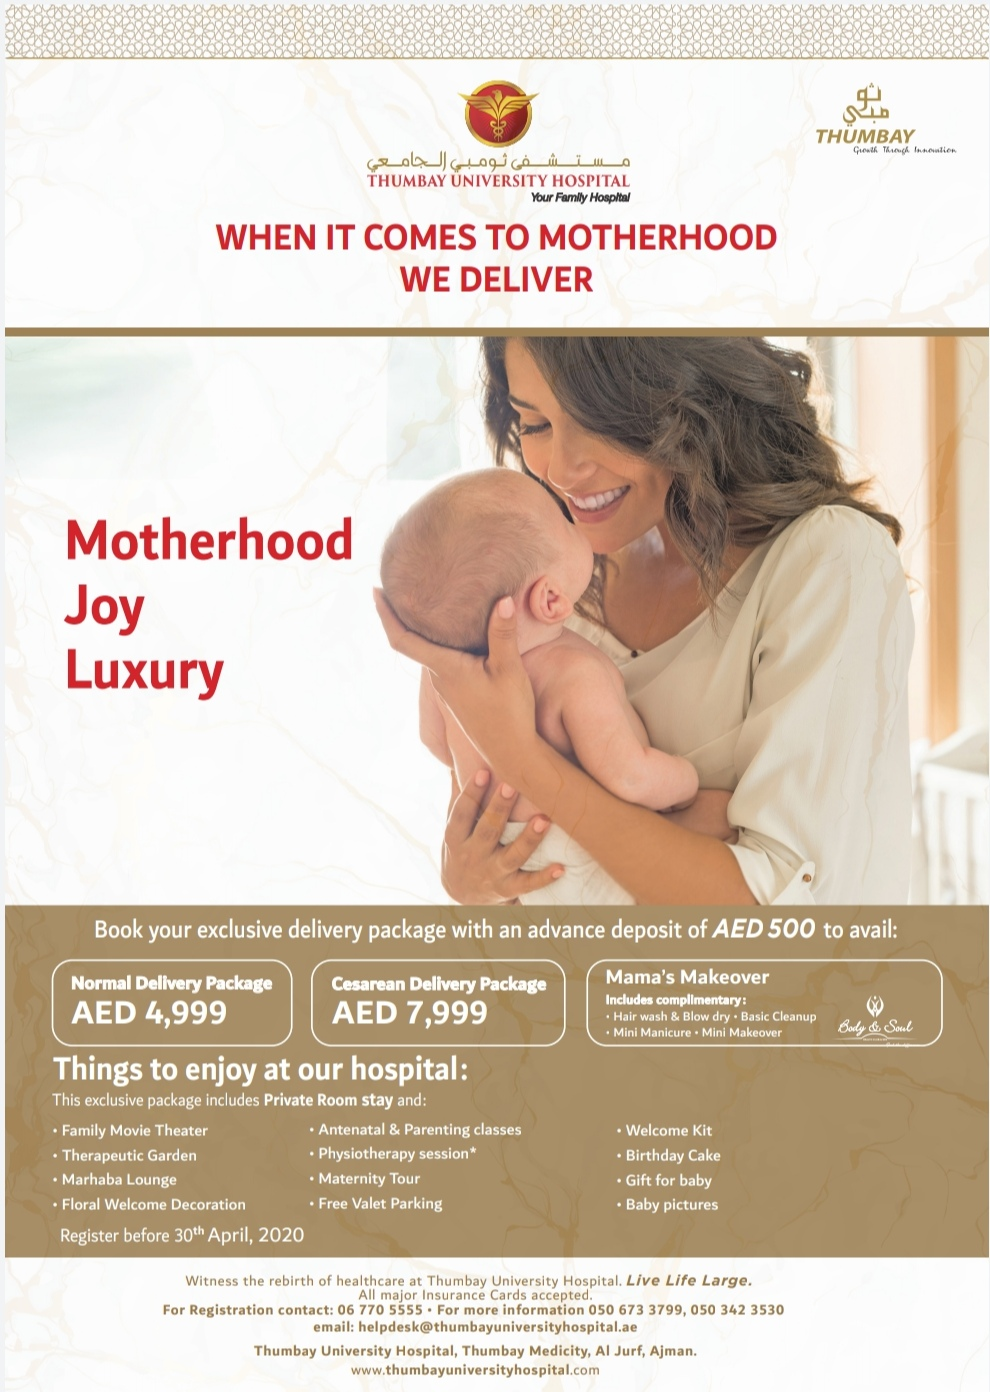 Motherhood Joy Luxury